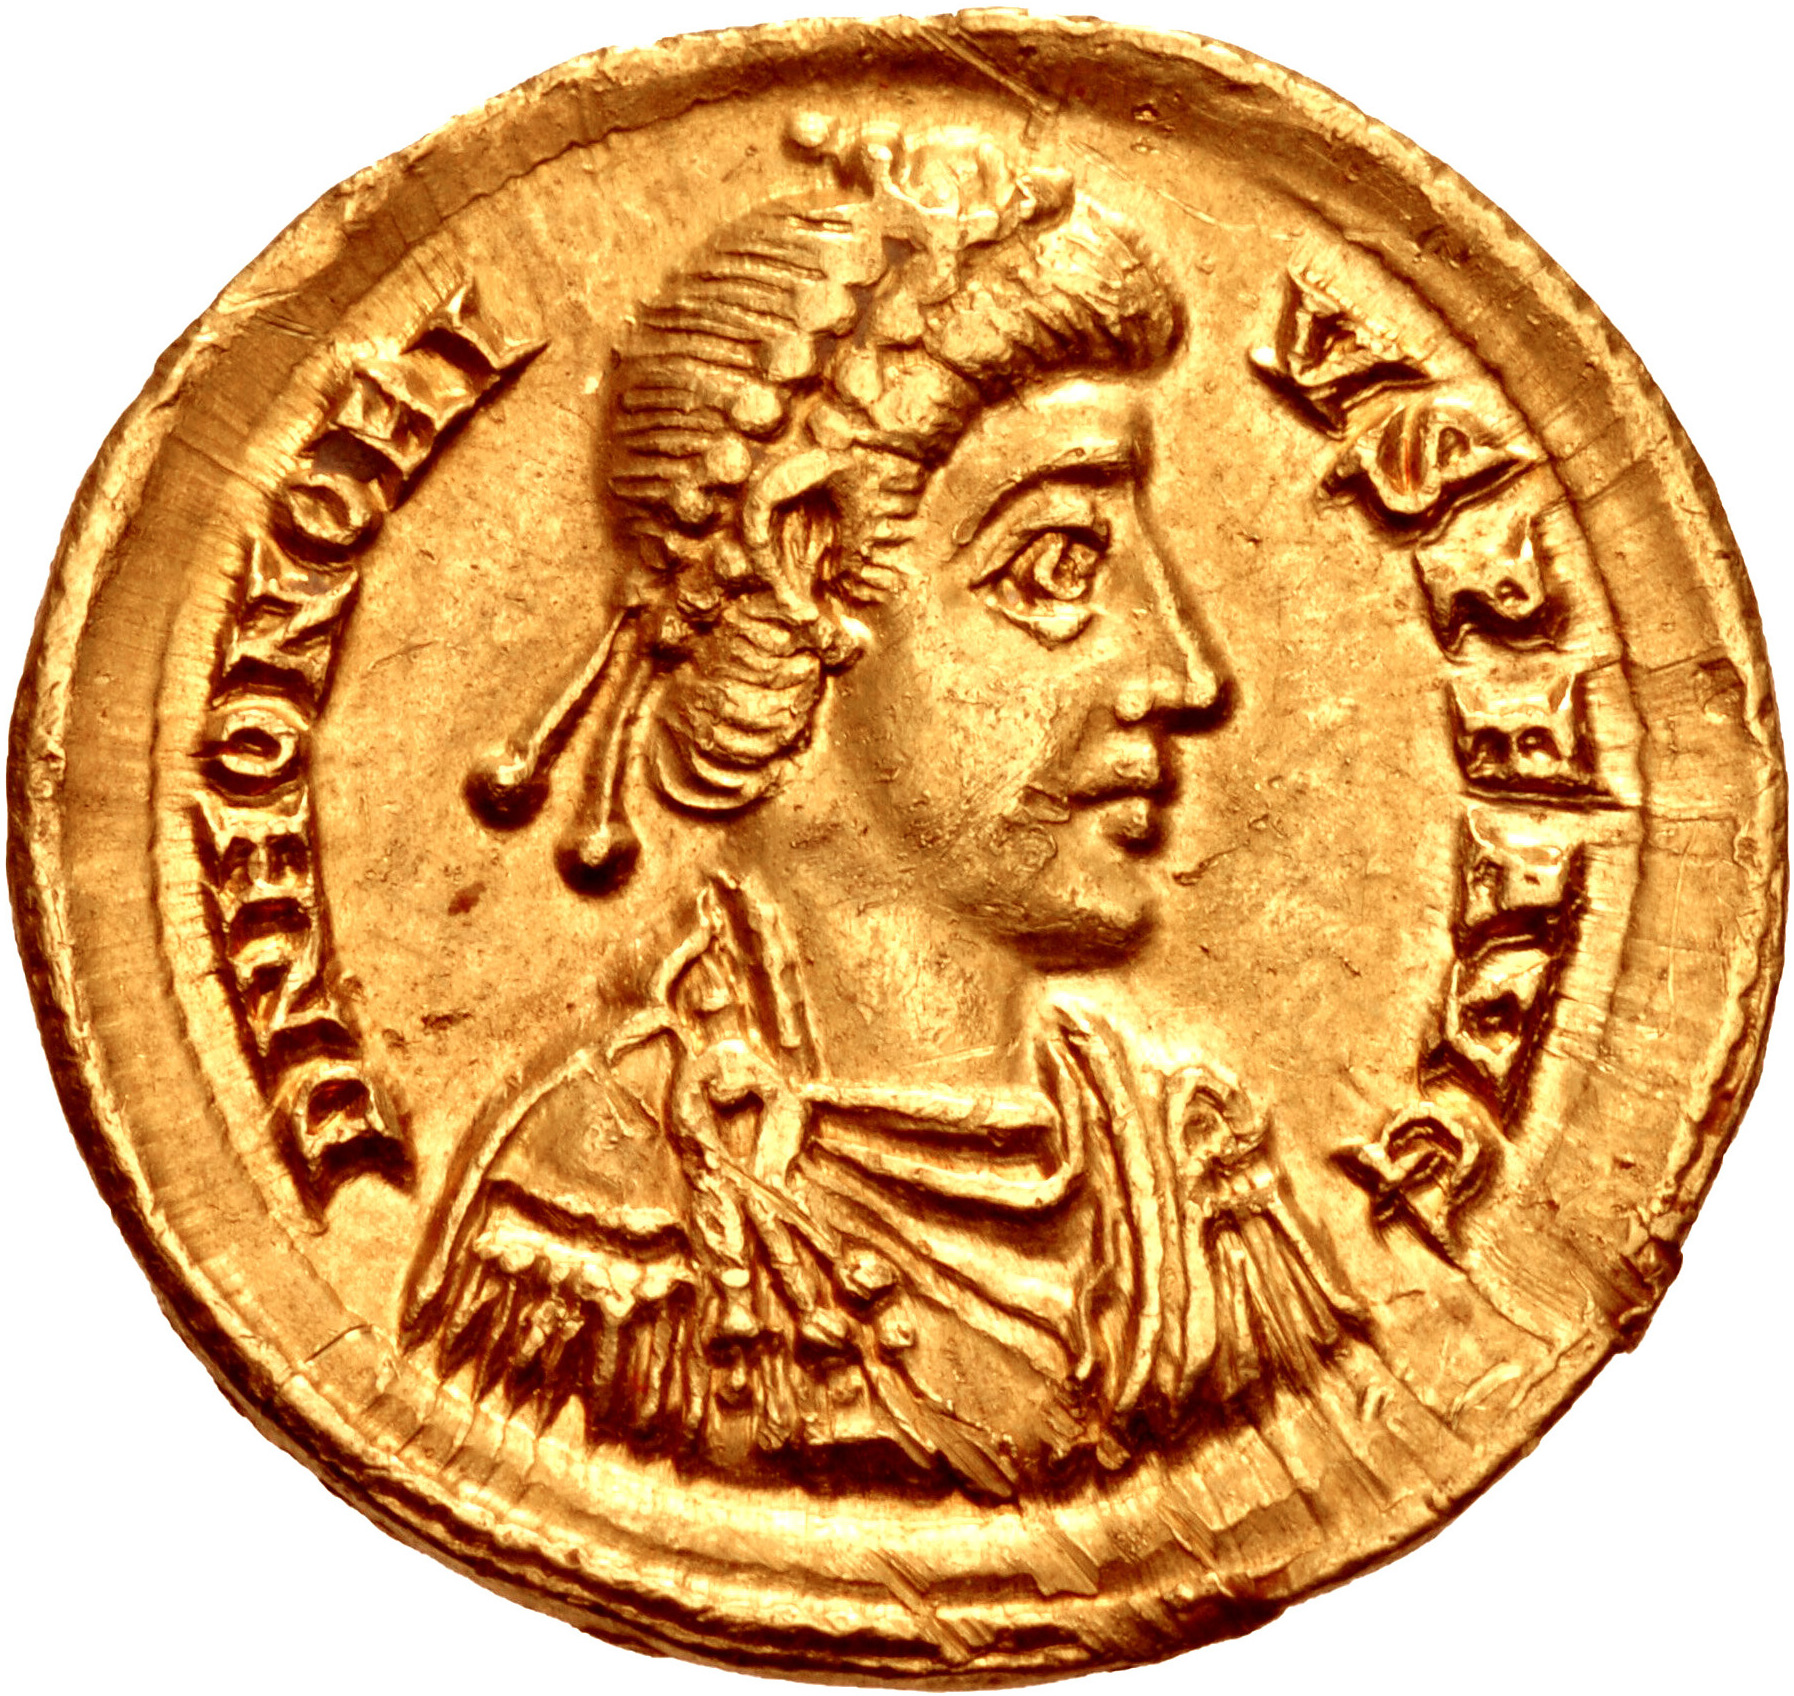 File:Honorius Golden Coin.jpg